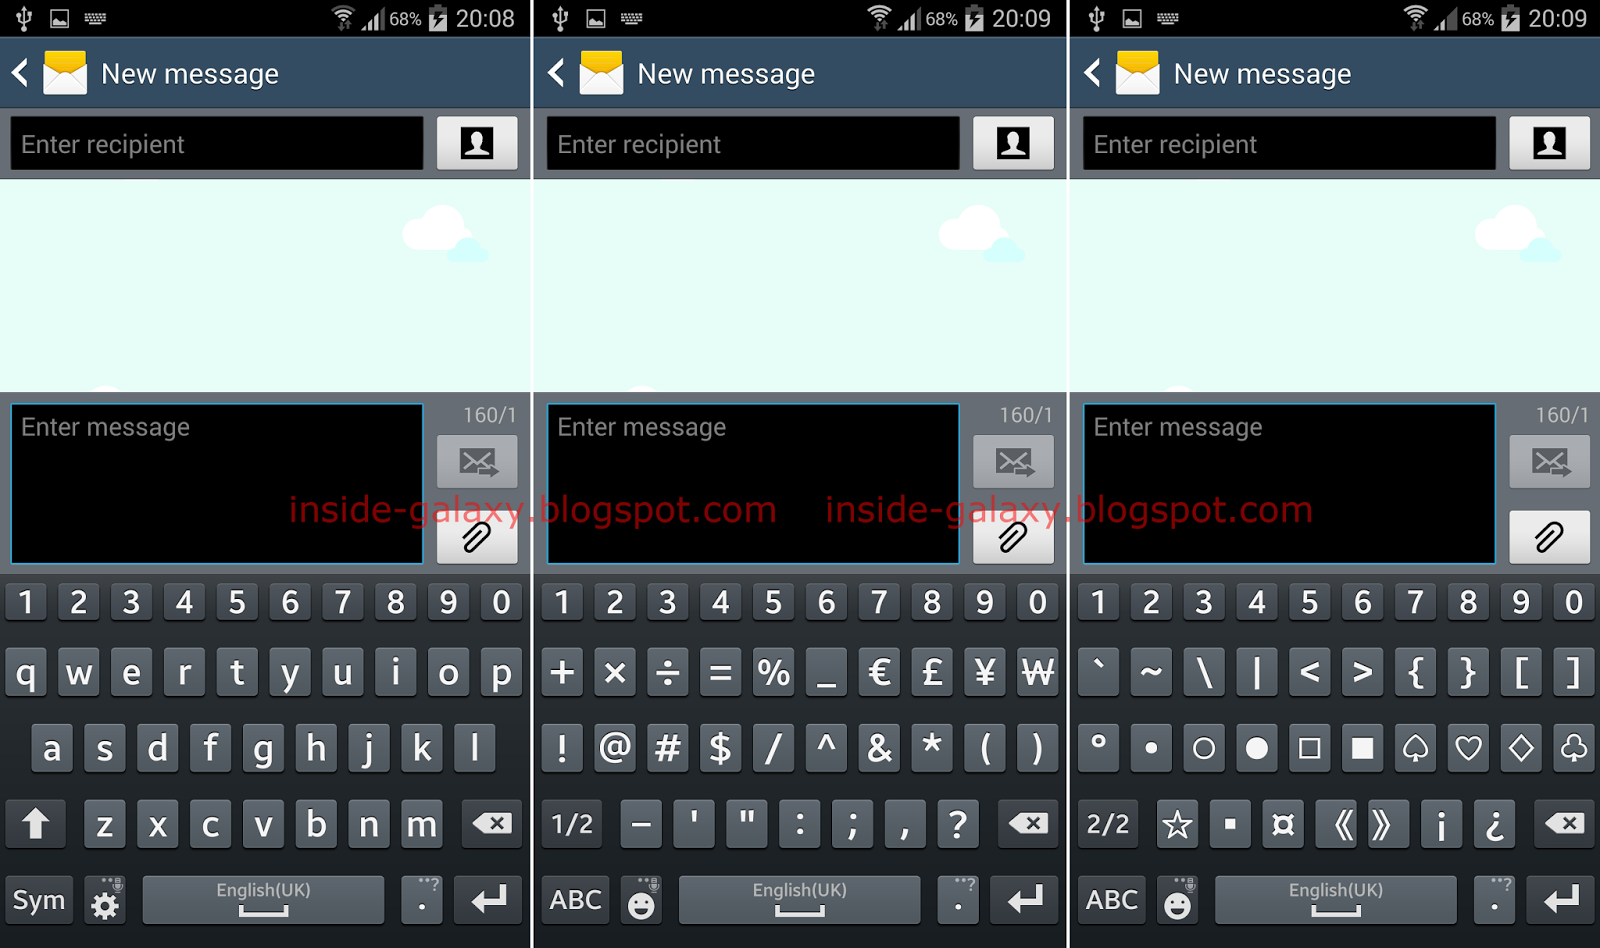 Samsung Galaxy S4: How to Use Samsung Virtual Keyboard in Android